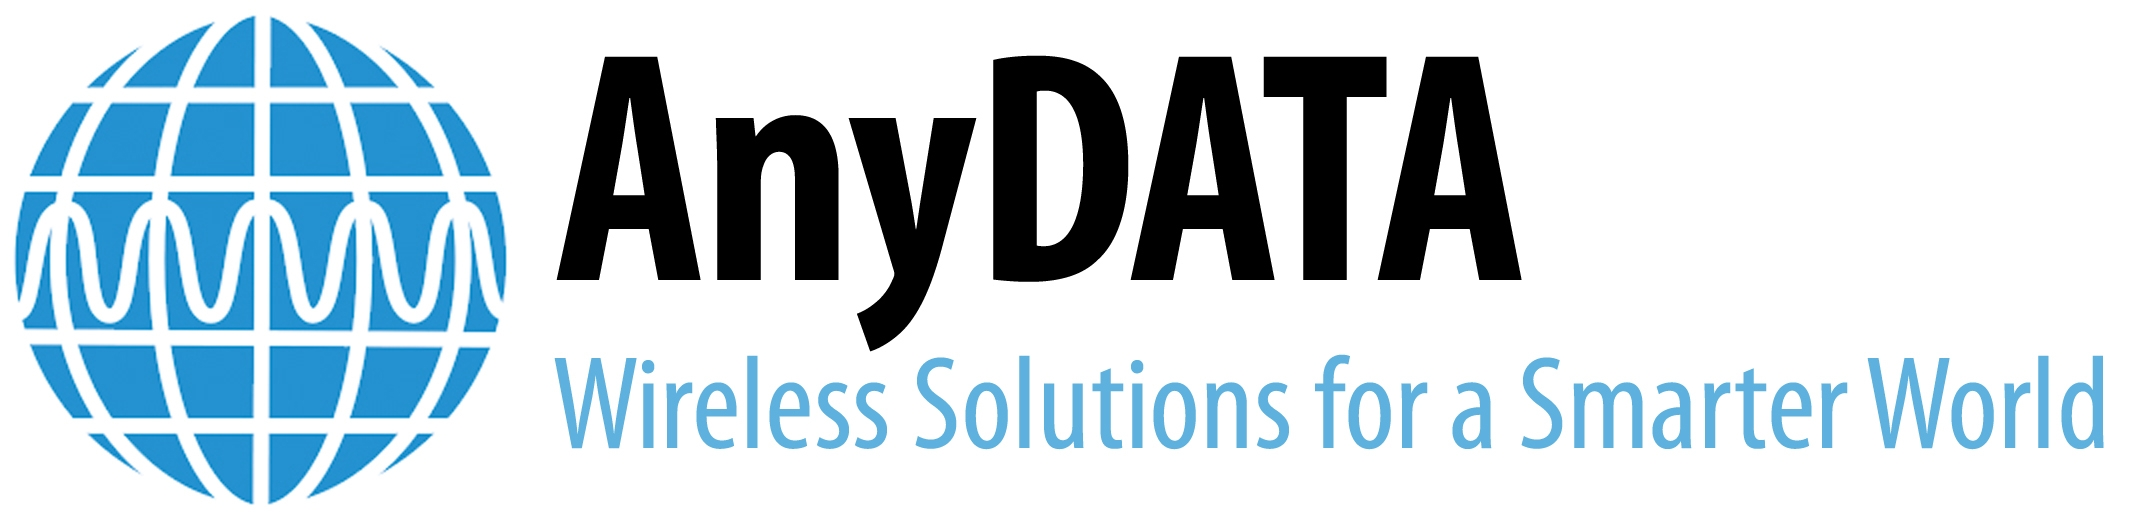 AnyDATA announces AnyDRIVE vehicle telematics platform and ACT212 and ACT210 OBD-II dongles